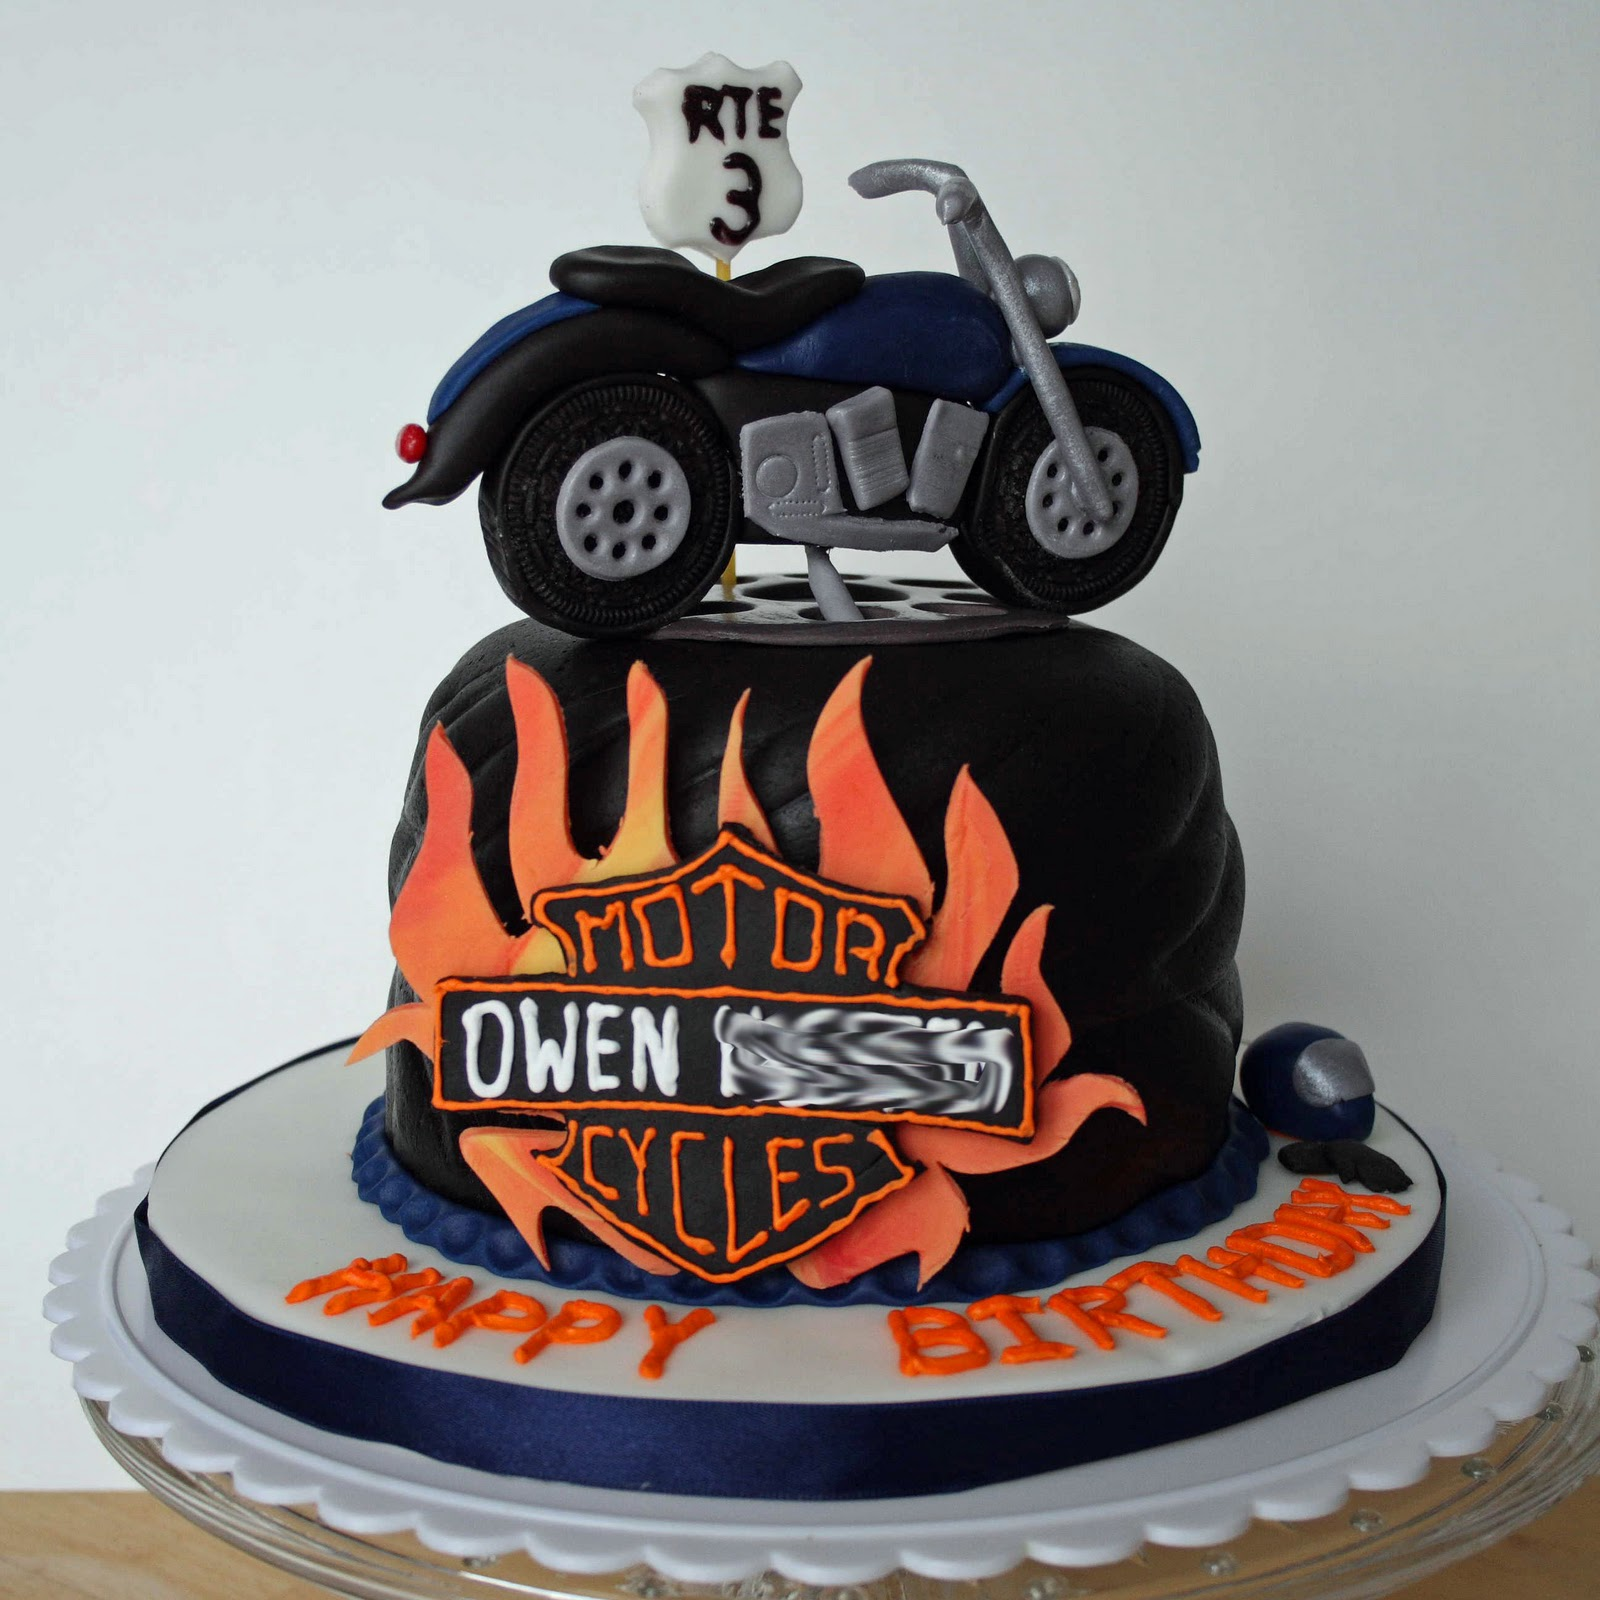 Motorcycle form to decorate birthday cake